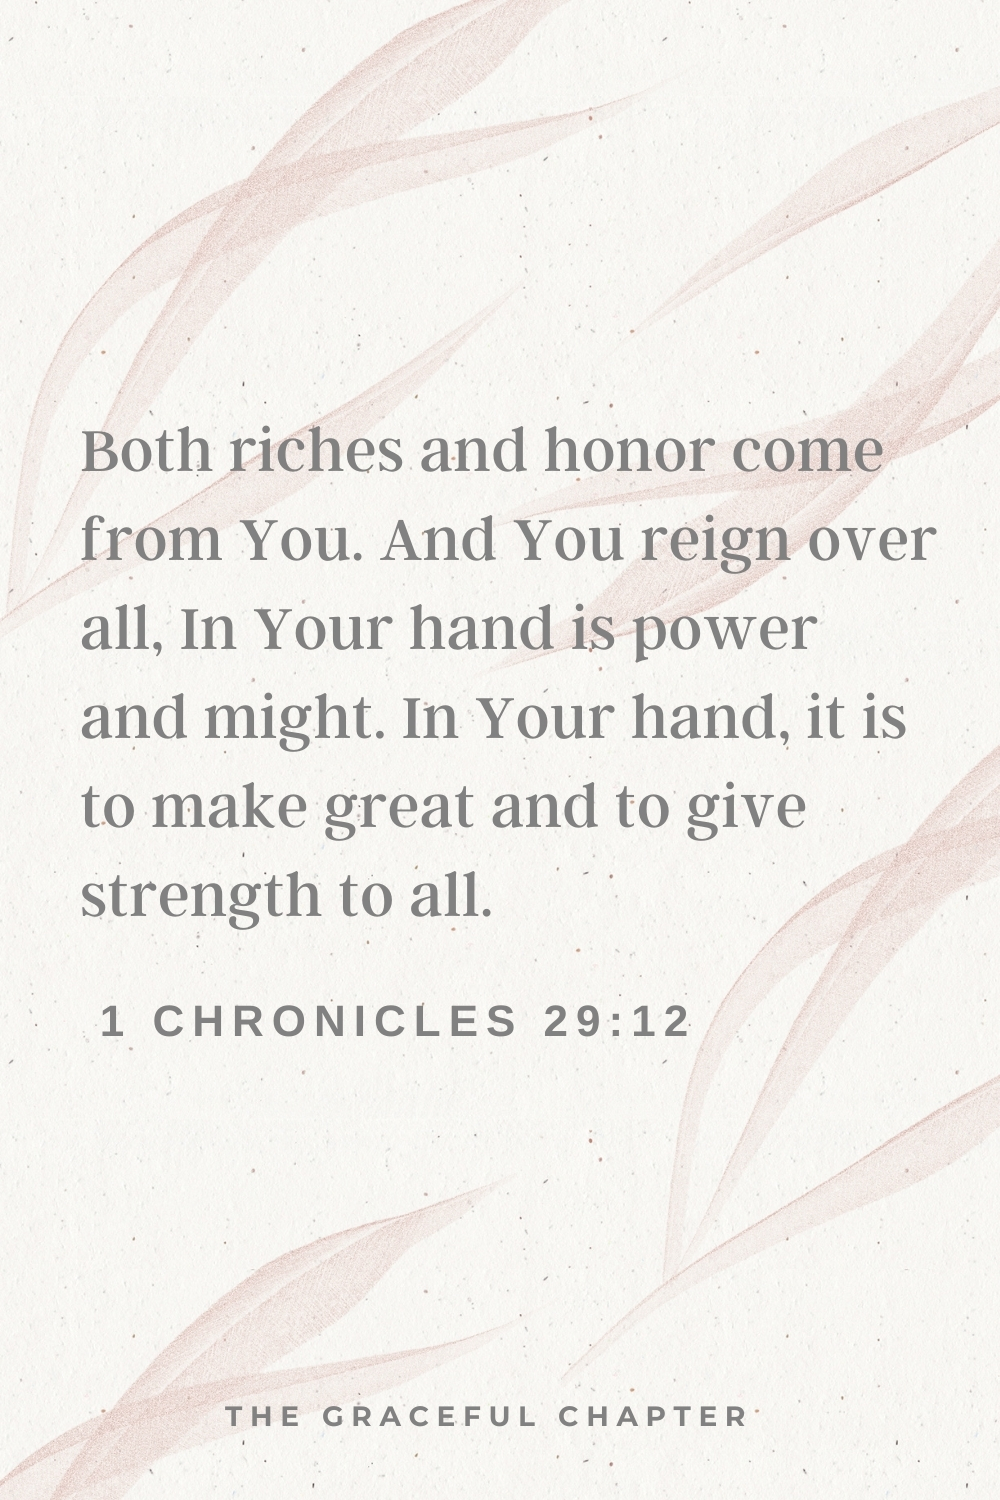 Both riches and honor come from You, And You reign over all. In Your hand is power and might; In Your hand it is to make great And to give strength to all. 1 Chronicles 29:12